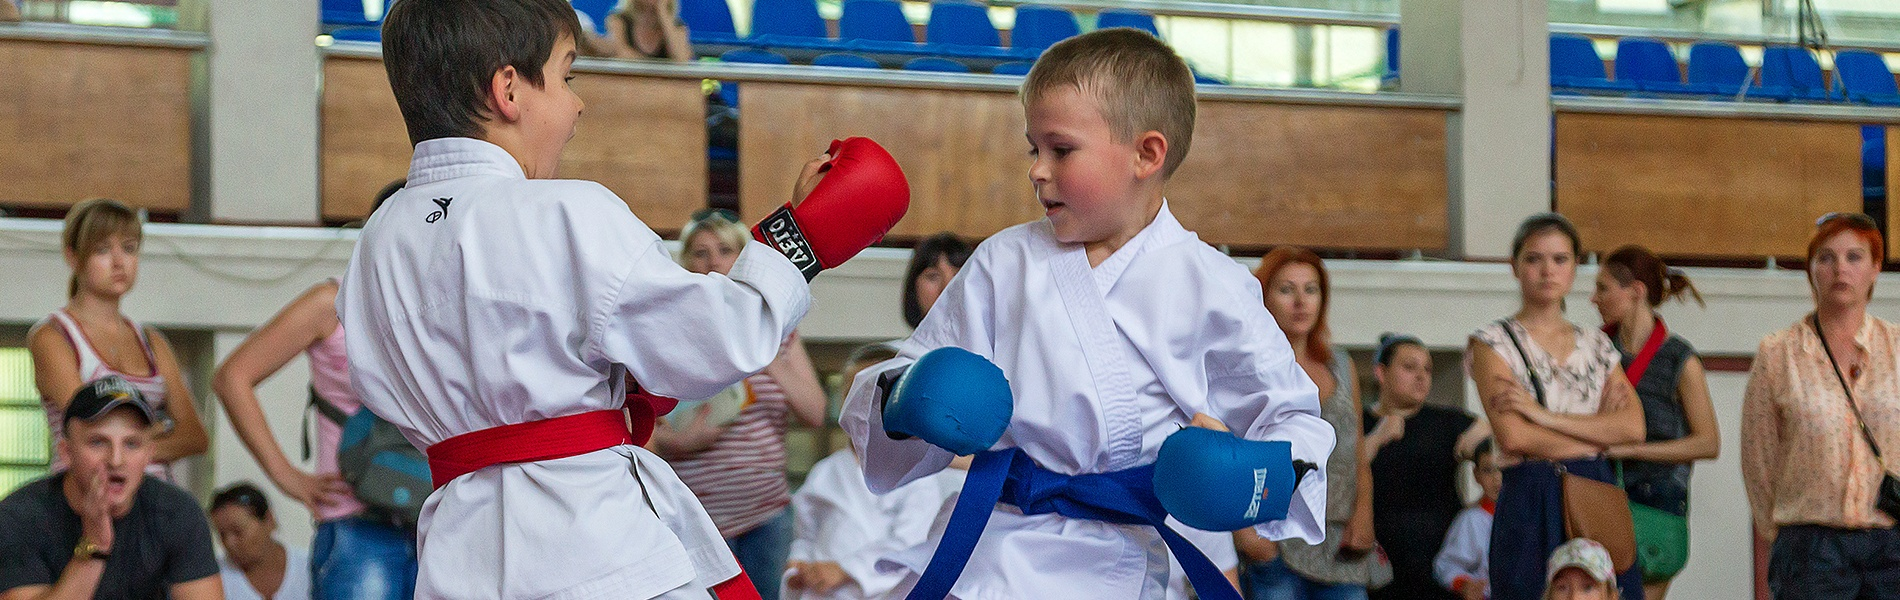 5 Ways to Successfully Promote Your Next Martial Arts Event